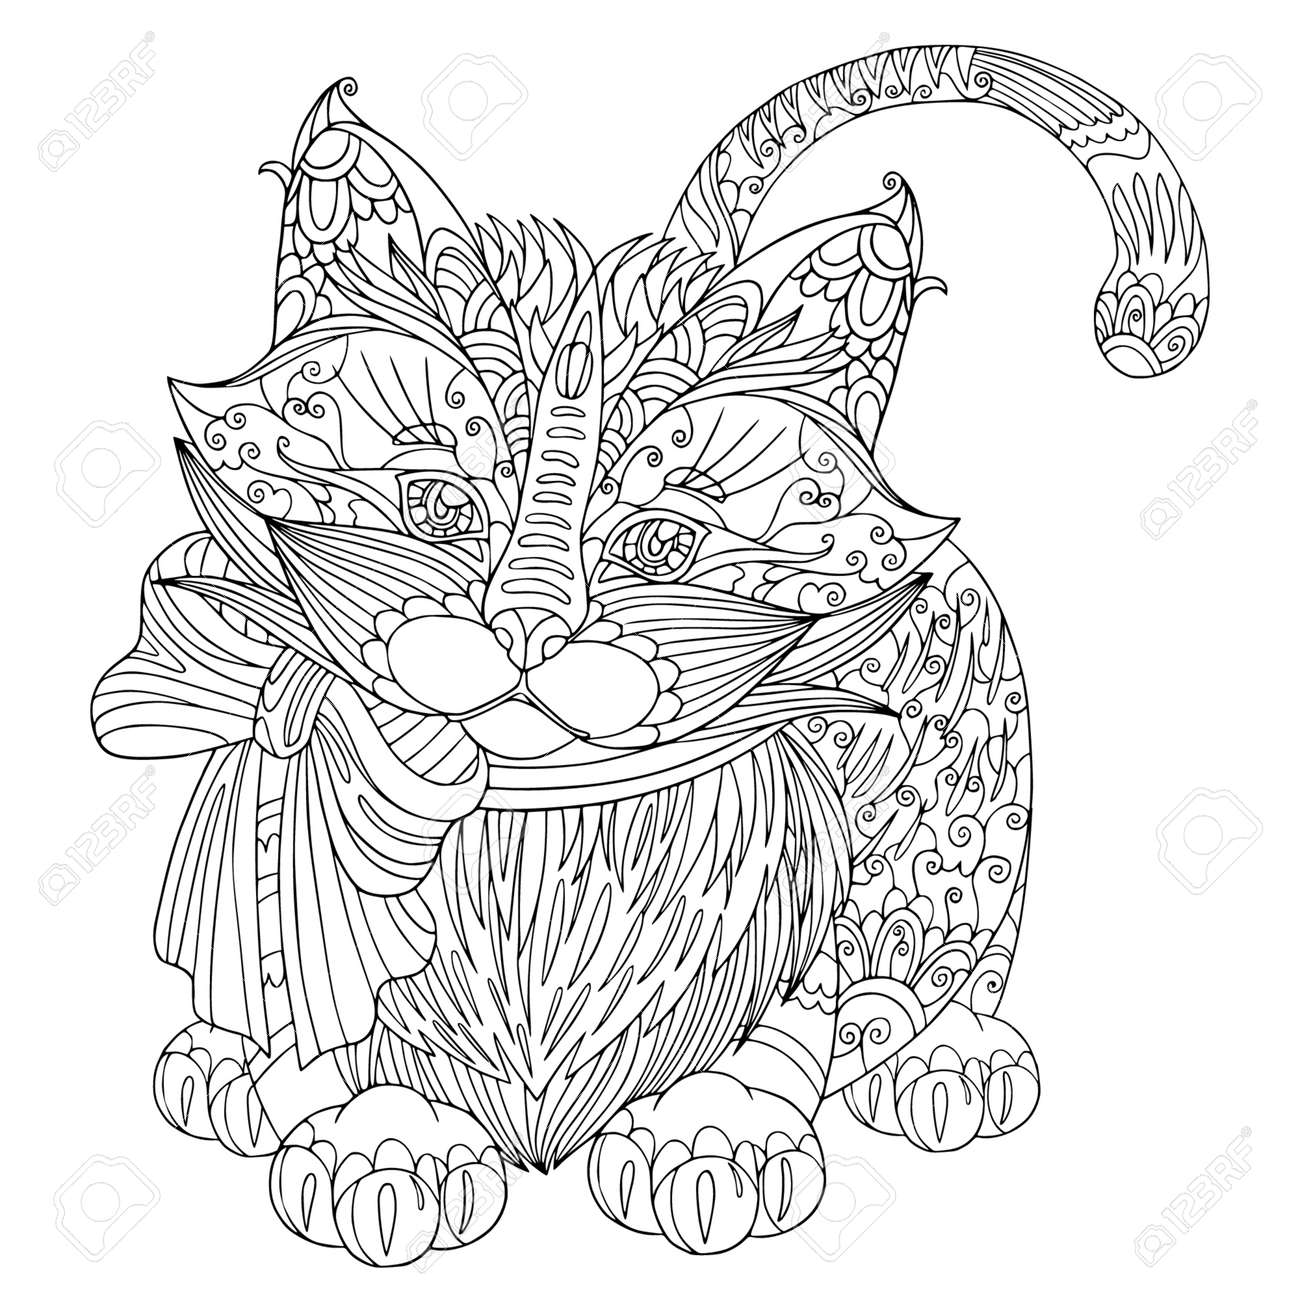 Coloring book page funny fluffy kitten with bow. Vector cat illustration with doodle elements for meditation and anti stress for adult. - 168293196